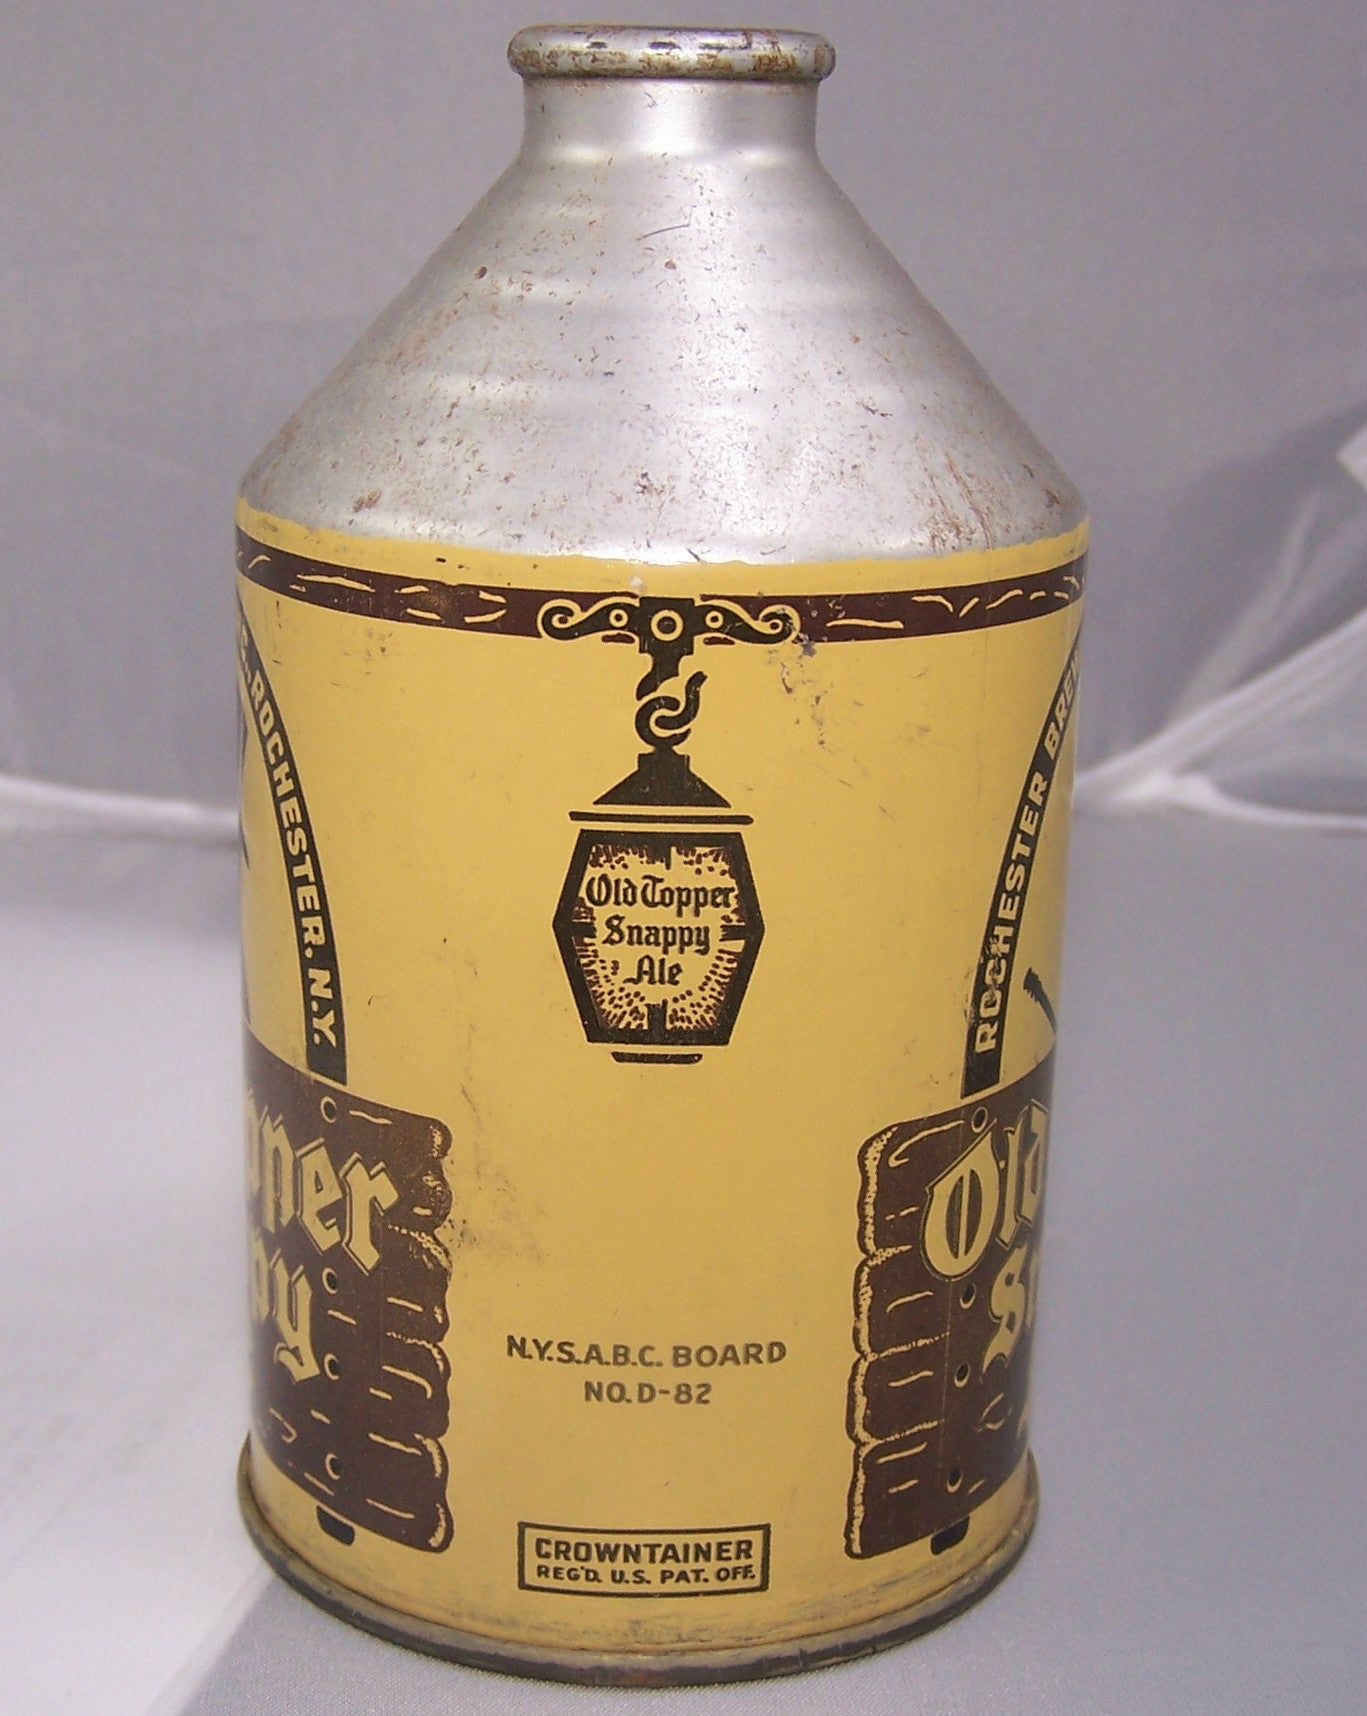 Old Topper Snappy Ale, USBC 197-29, Grade 1 Sold 3/2/15